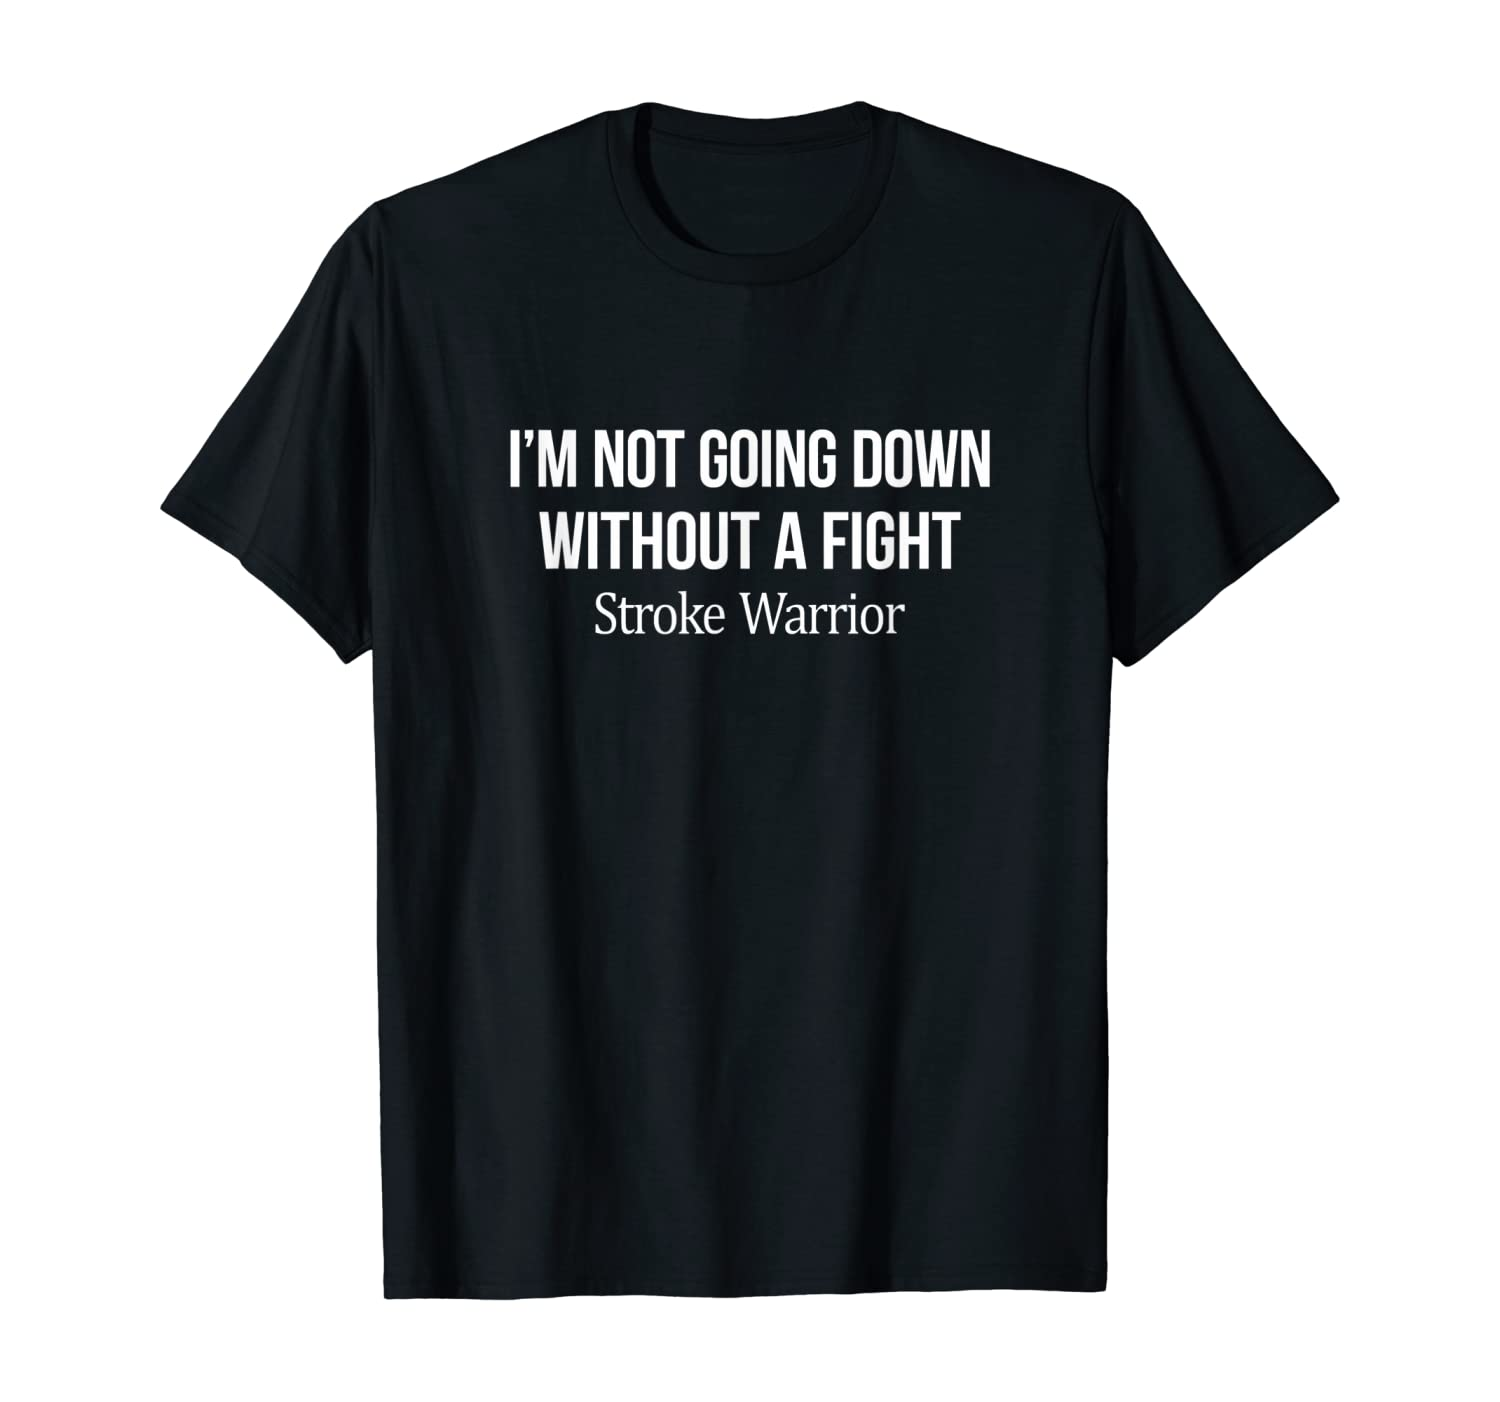 I'm Not Going Down Without A Fight - Stroke Warrior - T-Shirt